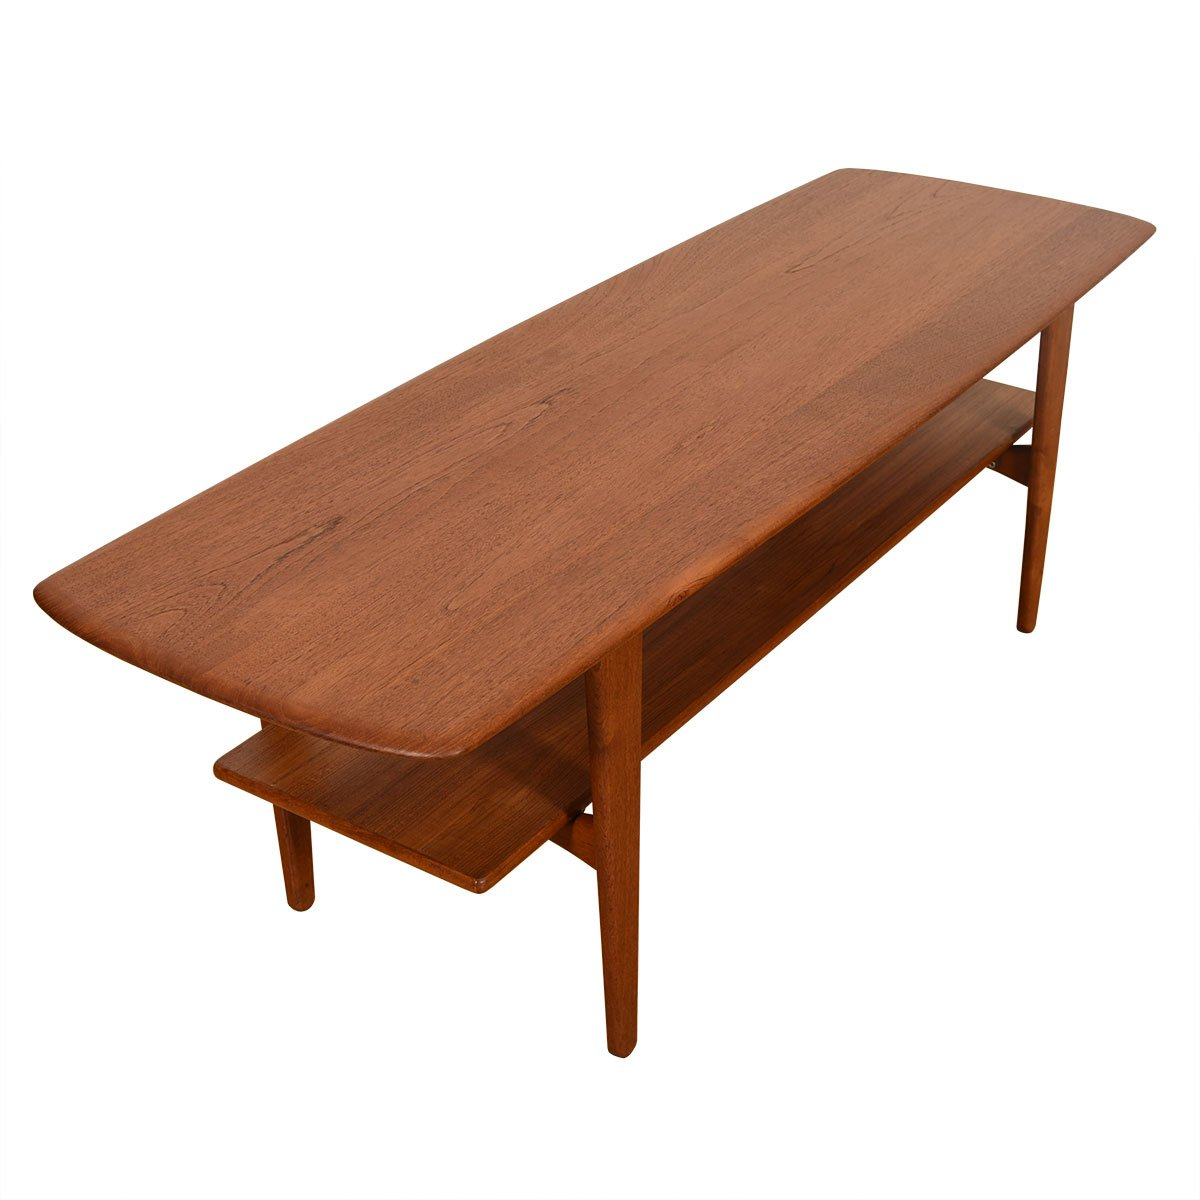 Sculpted Danish Modern Teak Coffee Table w/ Shelf